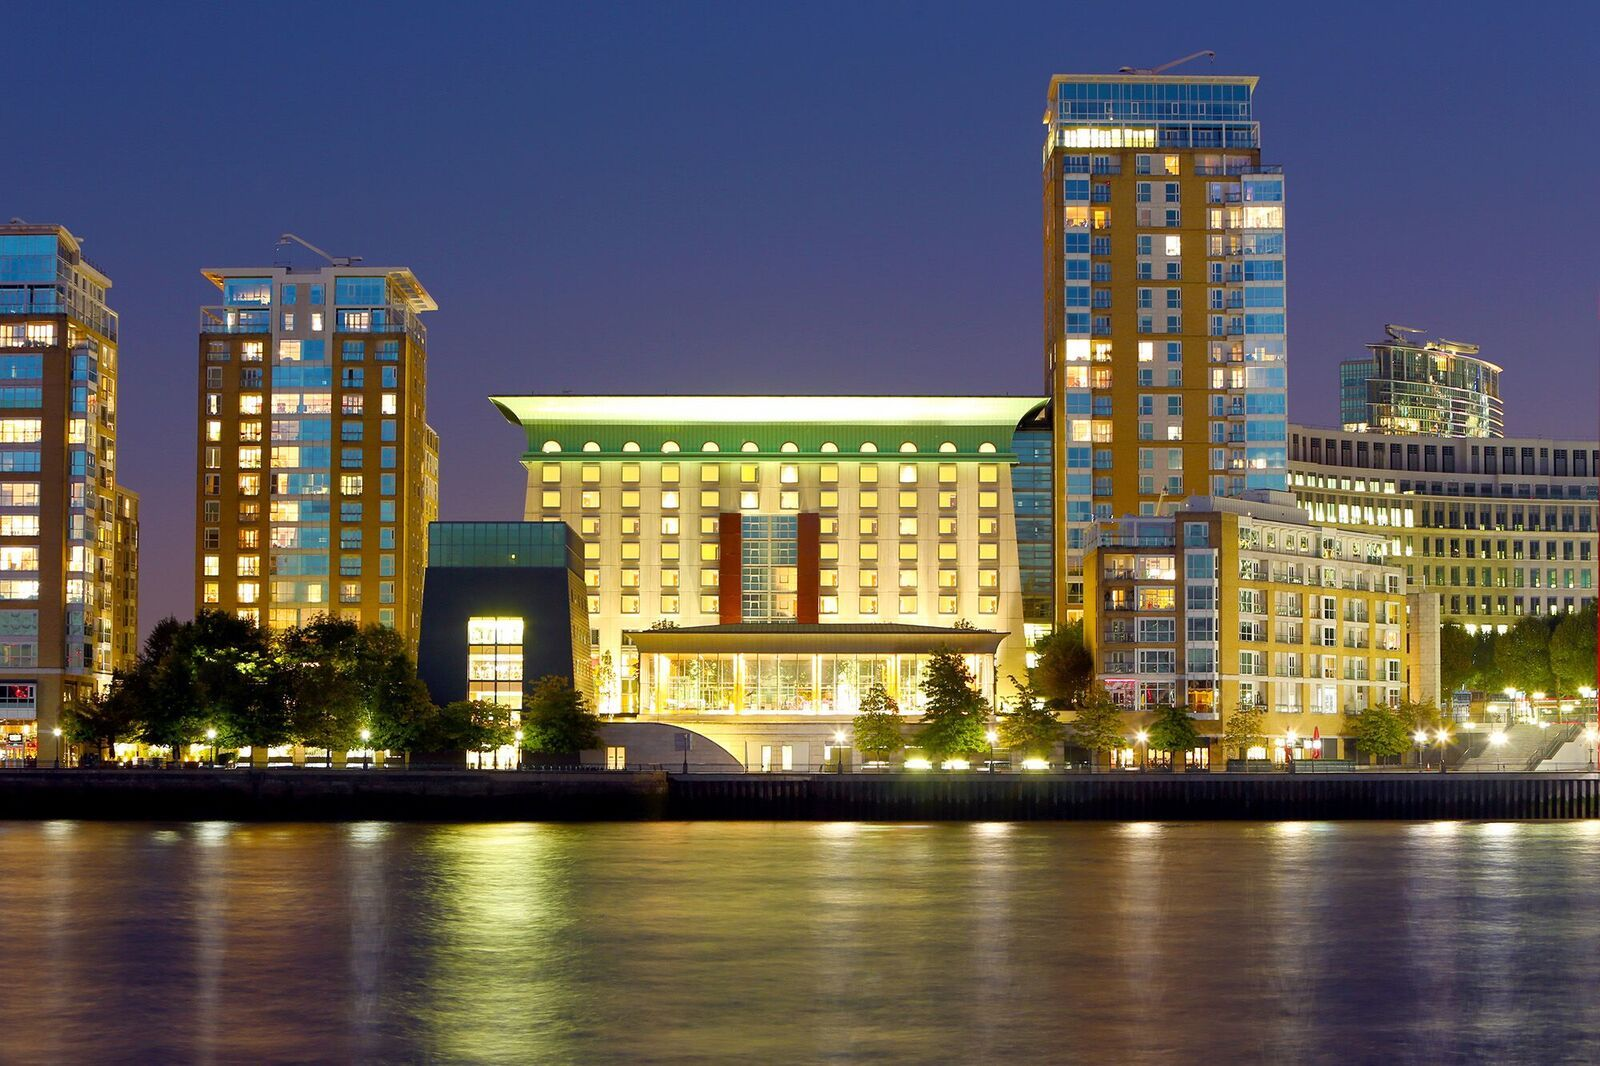 The Hotel Canary Riverside Plaza Hotel